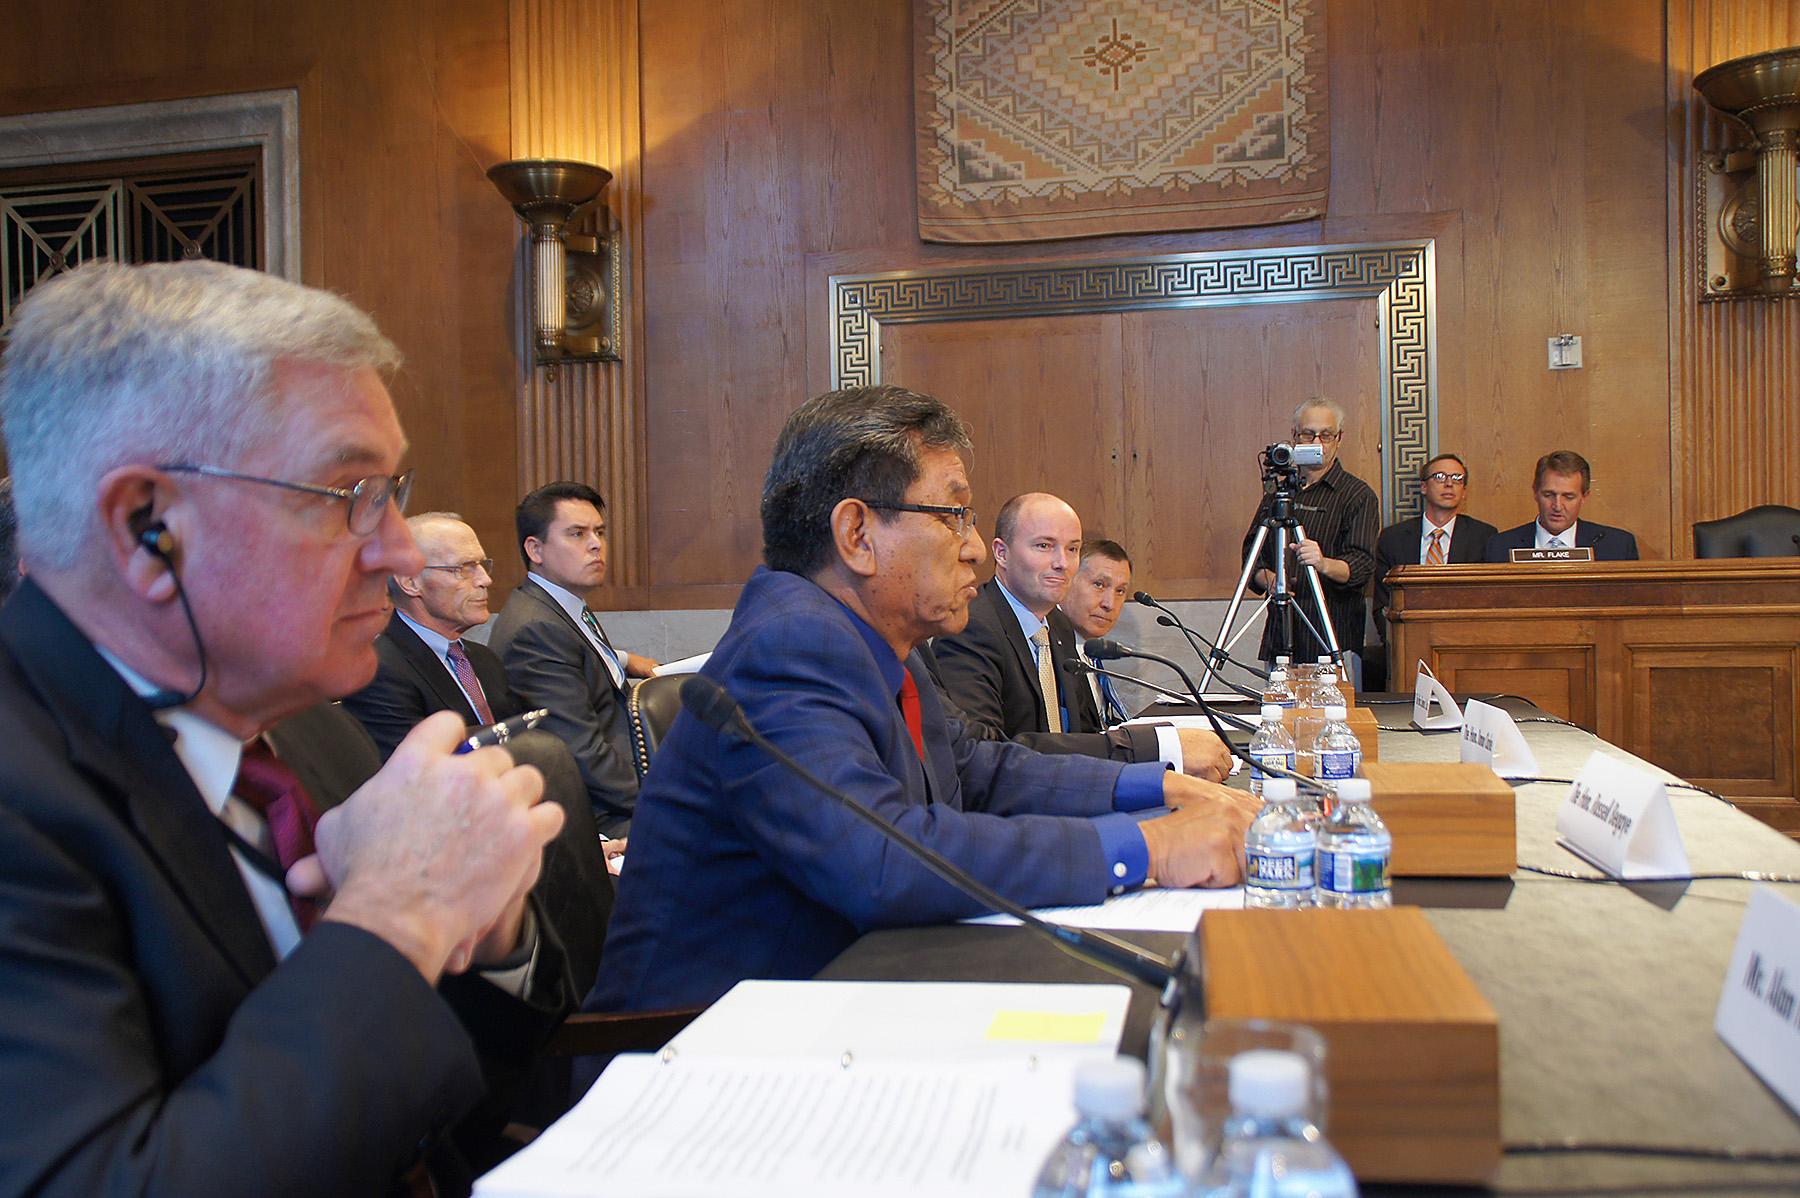 Senate Committee on Indian Affairs schedules meeting and hearing